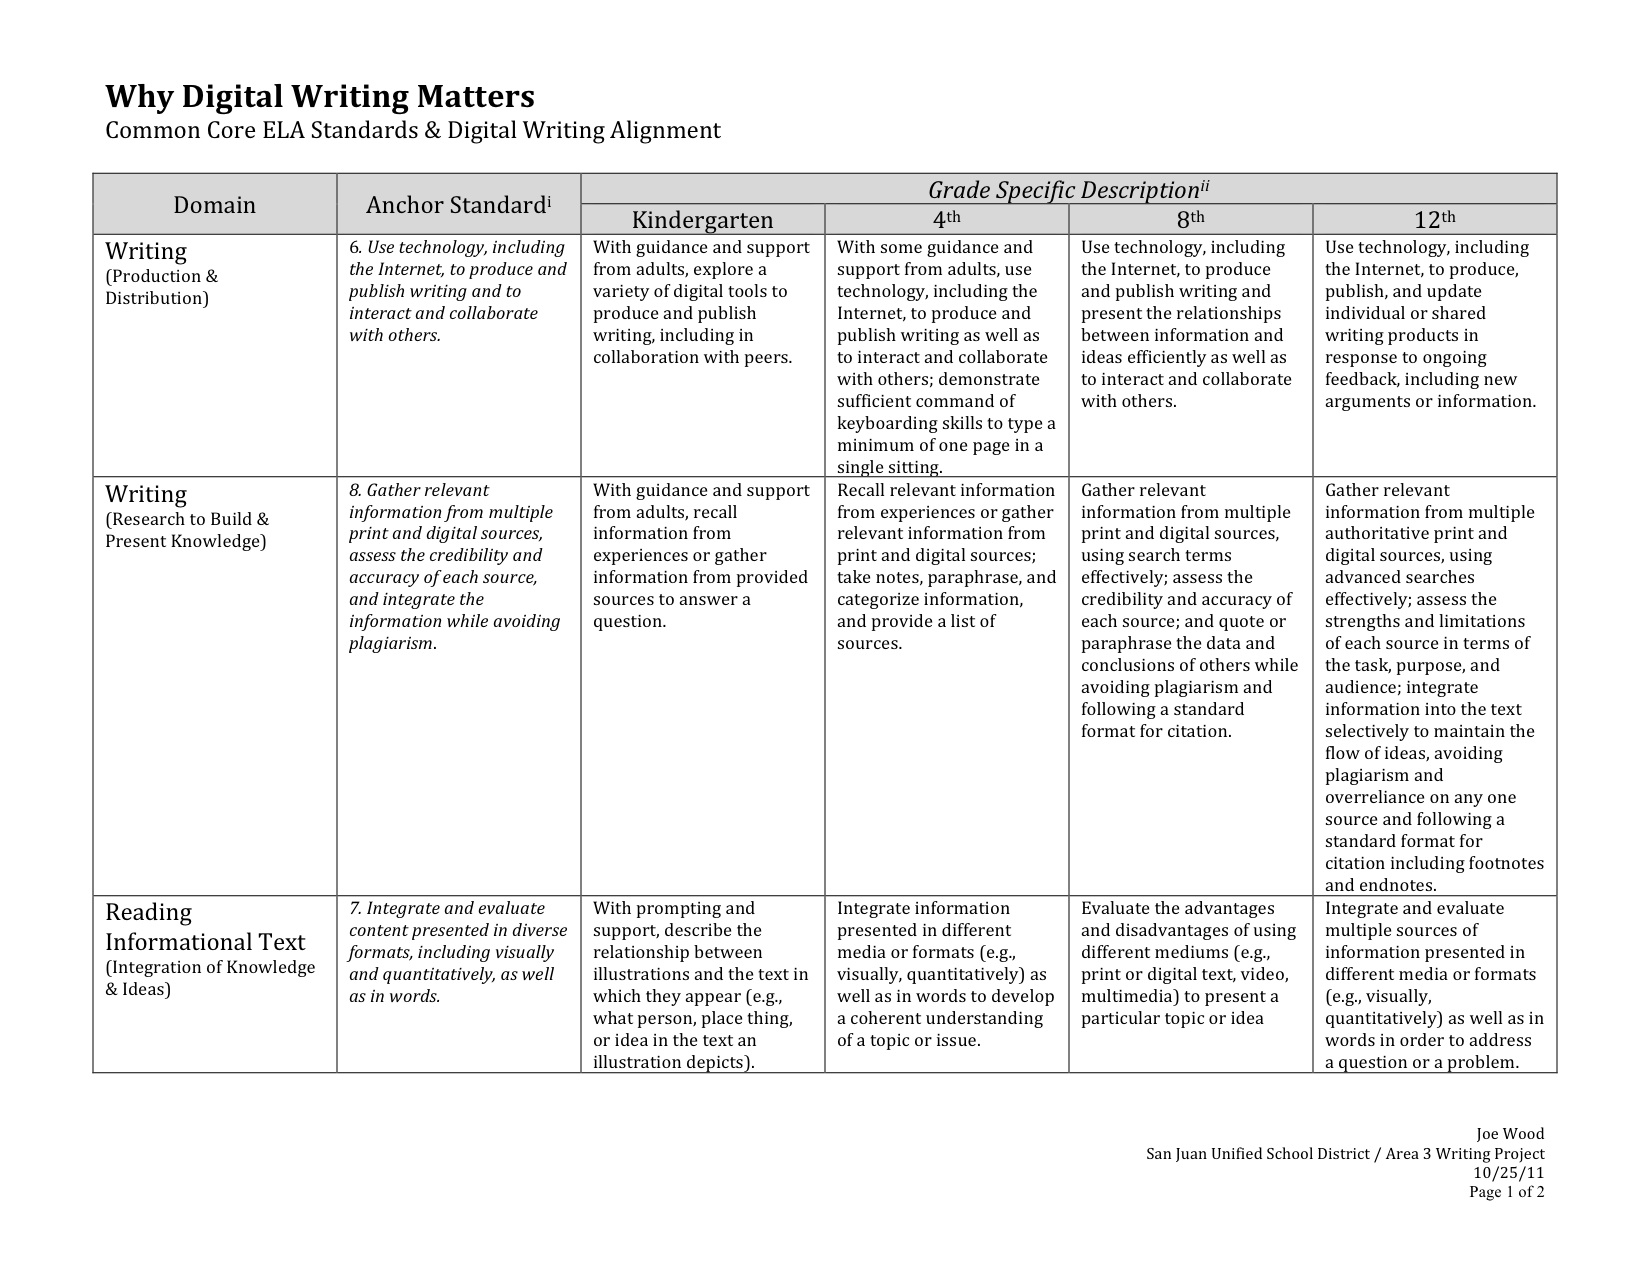 003 Research Paper Why Digital Writing Matters According To The Common Core Ela Standards1 High School Dreaded Rubric Physics Science Pdf English Full